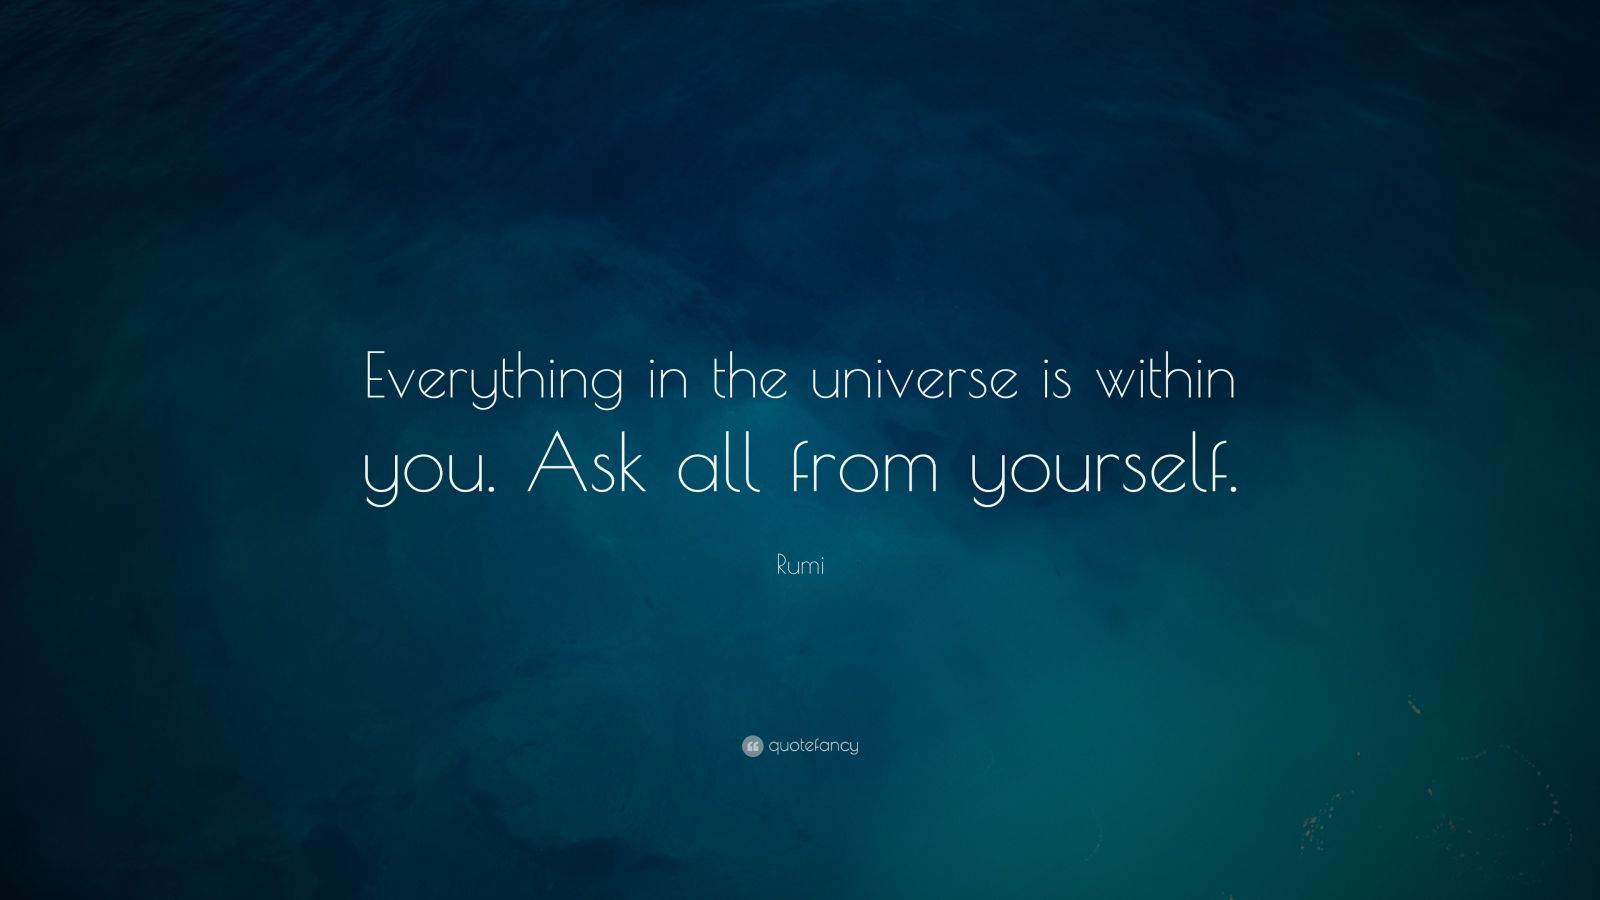 Mother Quotes Wallpapers Hd Rumi Quote Everything In The Universe Is Within You Ask